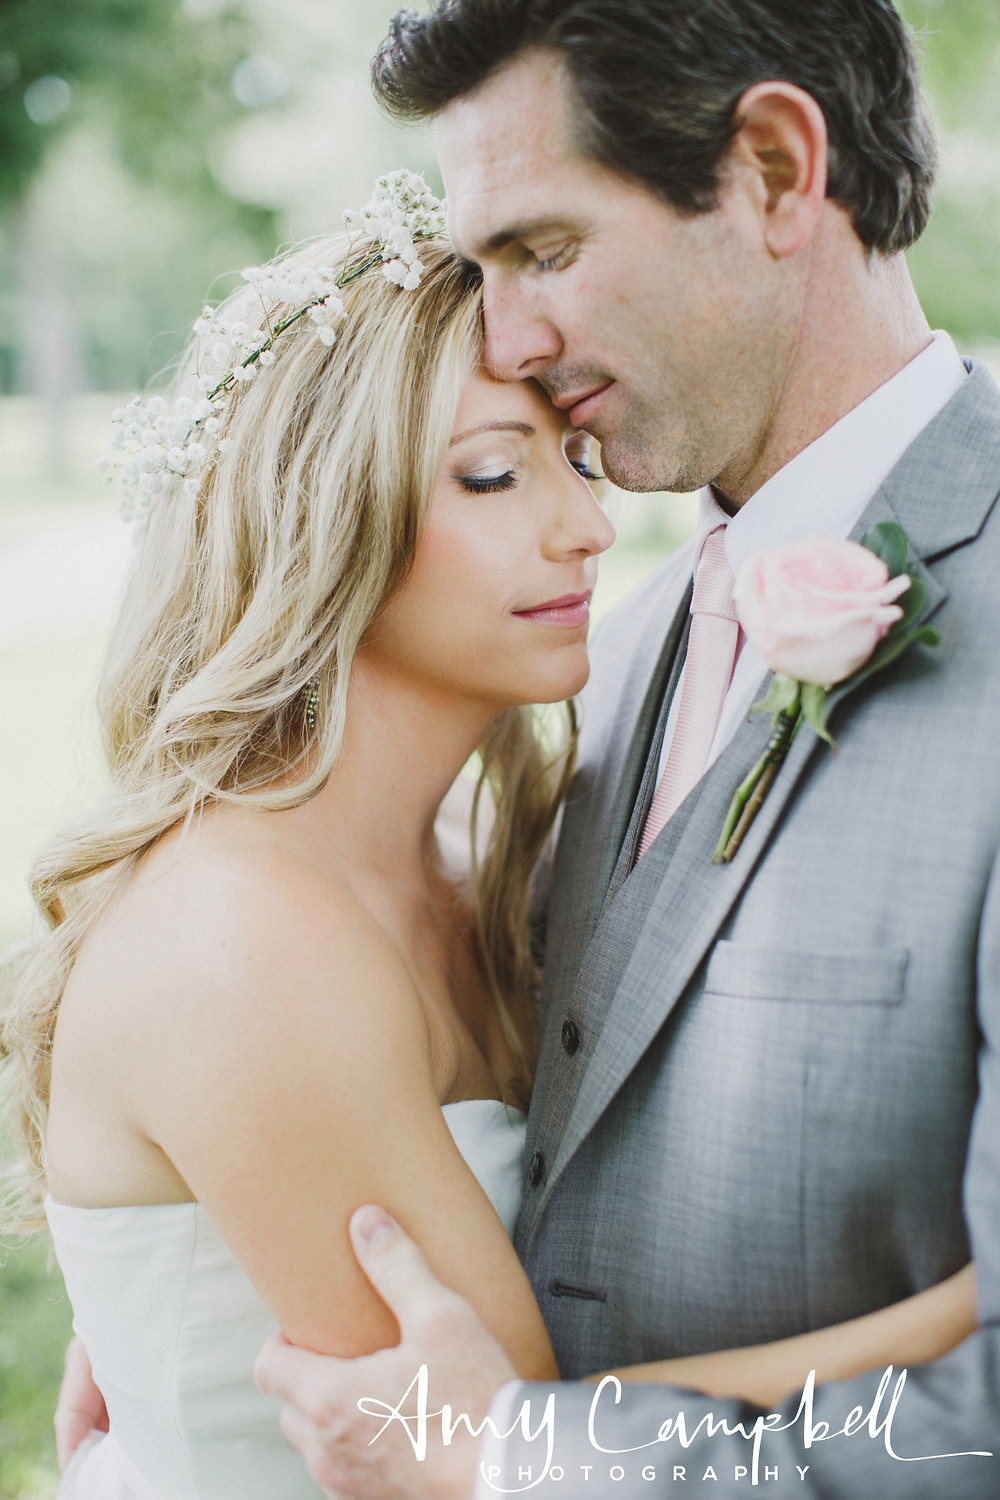 Scripted Events Lexington | Amy Campbell Photography